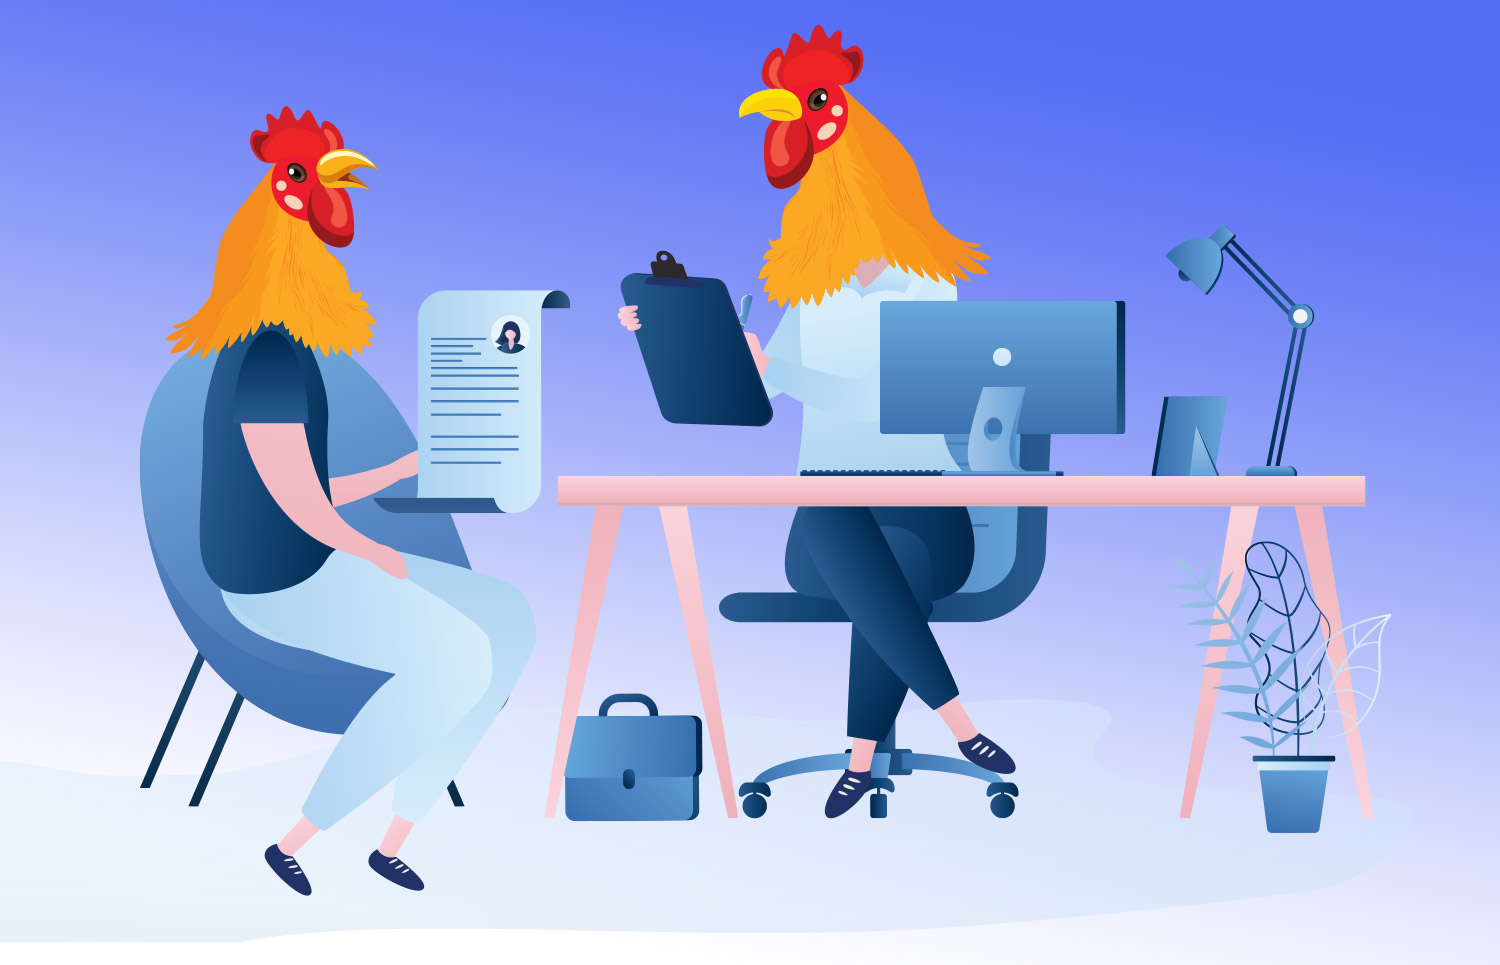 Illustration of Two Chickens in an Interview